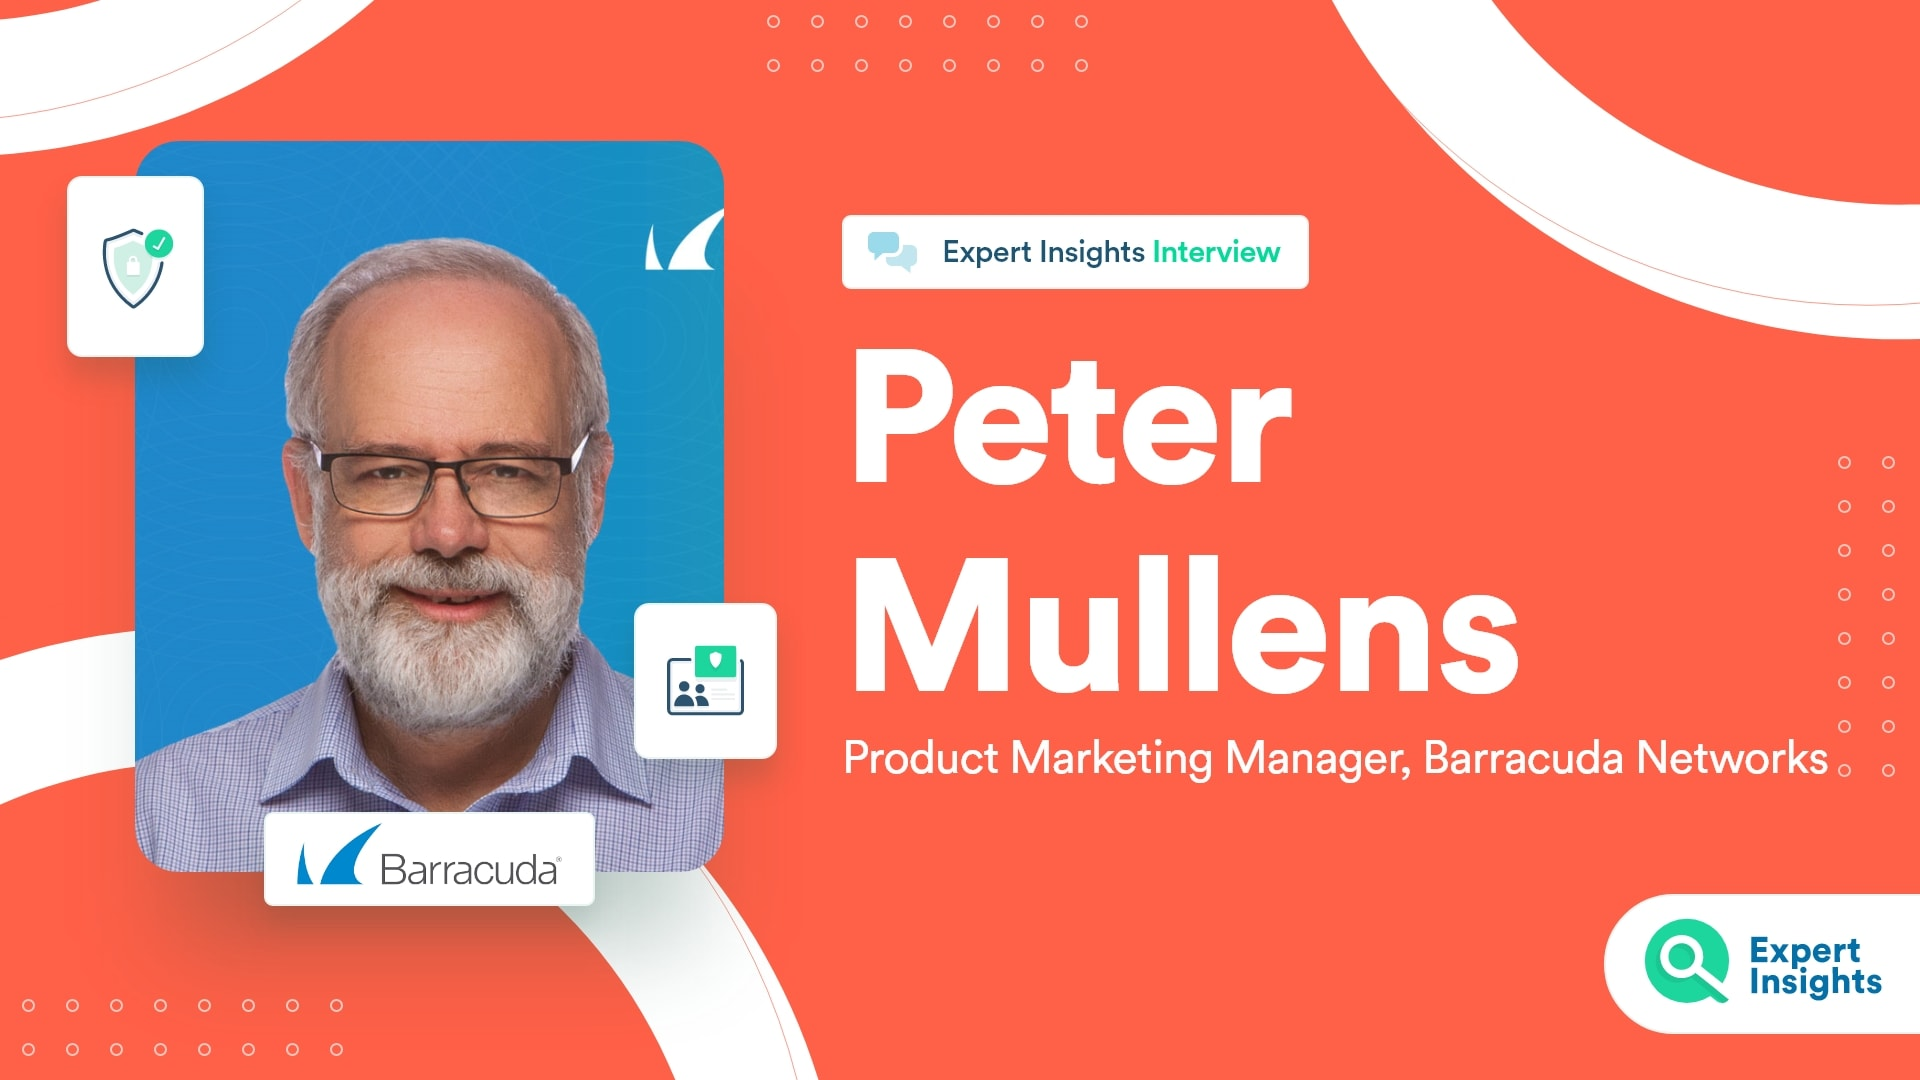 Interview With Peter Mullens Of Barracuda - Expert Insights